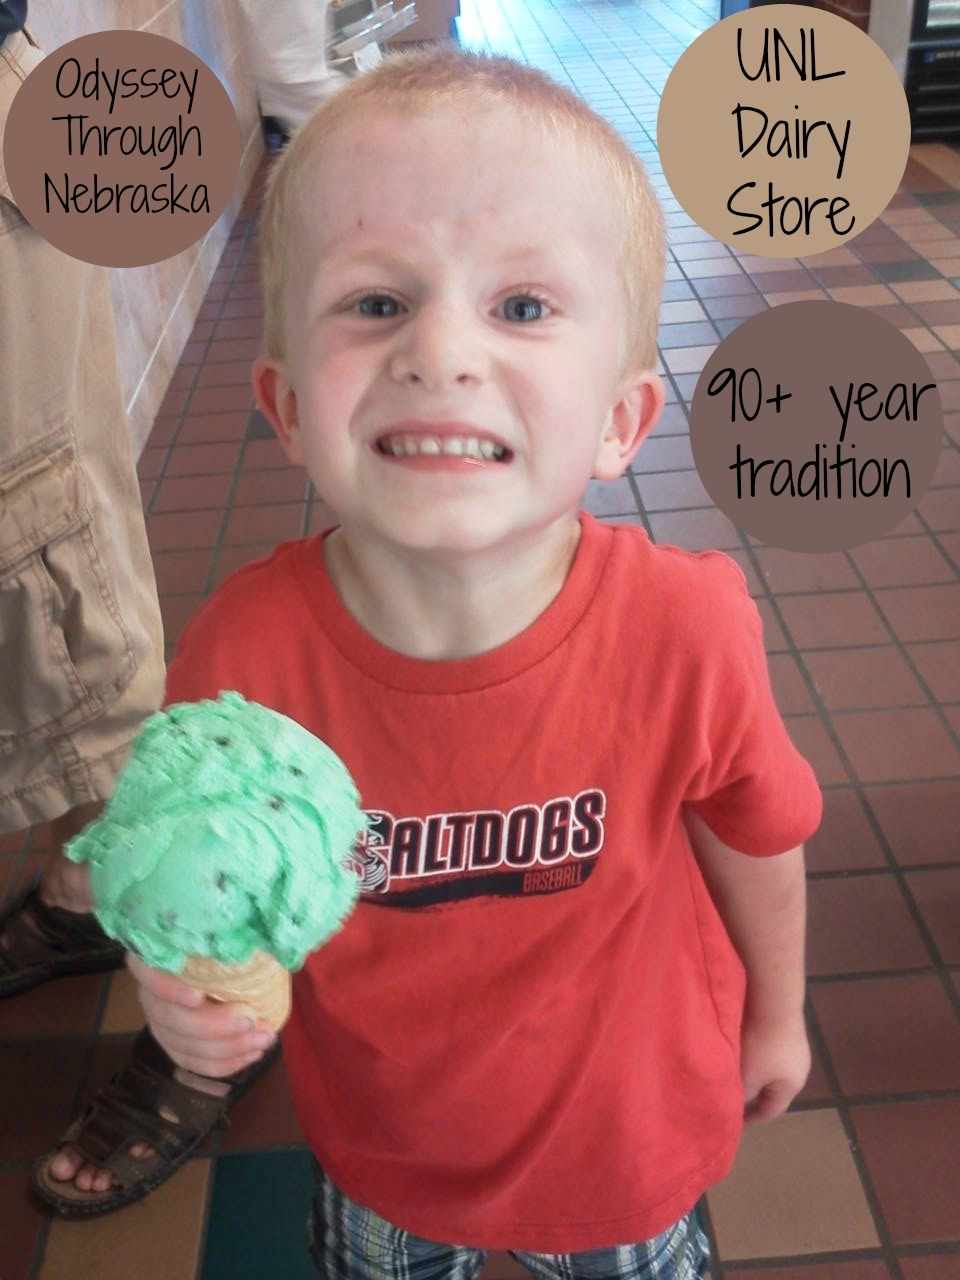 UNL Dairy Store has been serving up ice cream for 90 years